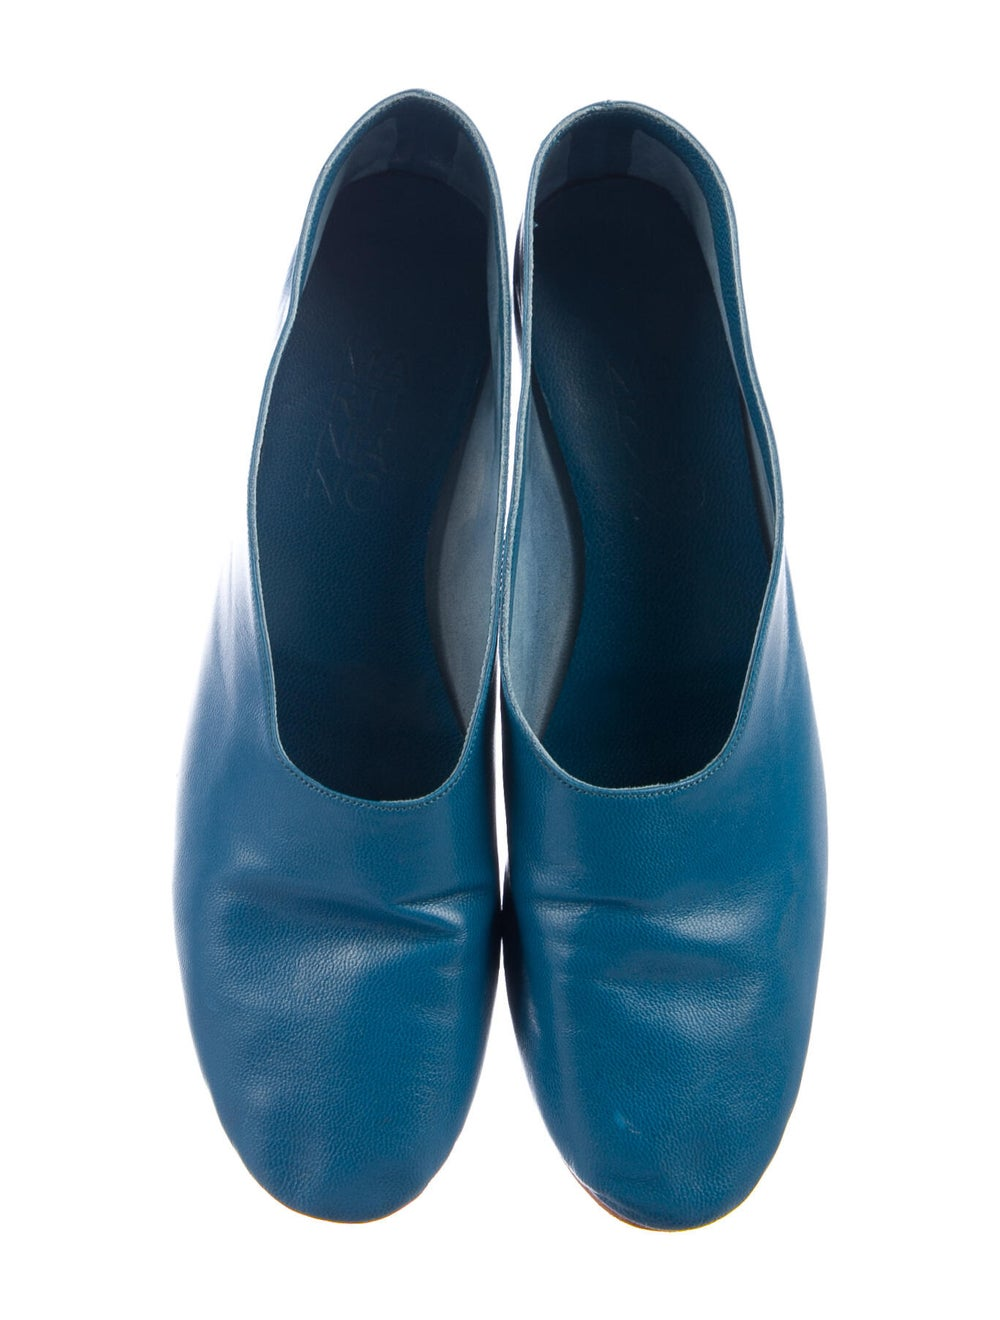 Martiniano Leather Flats Blue - image 3